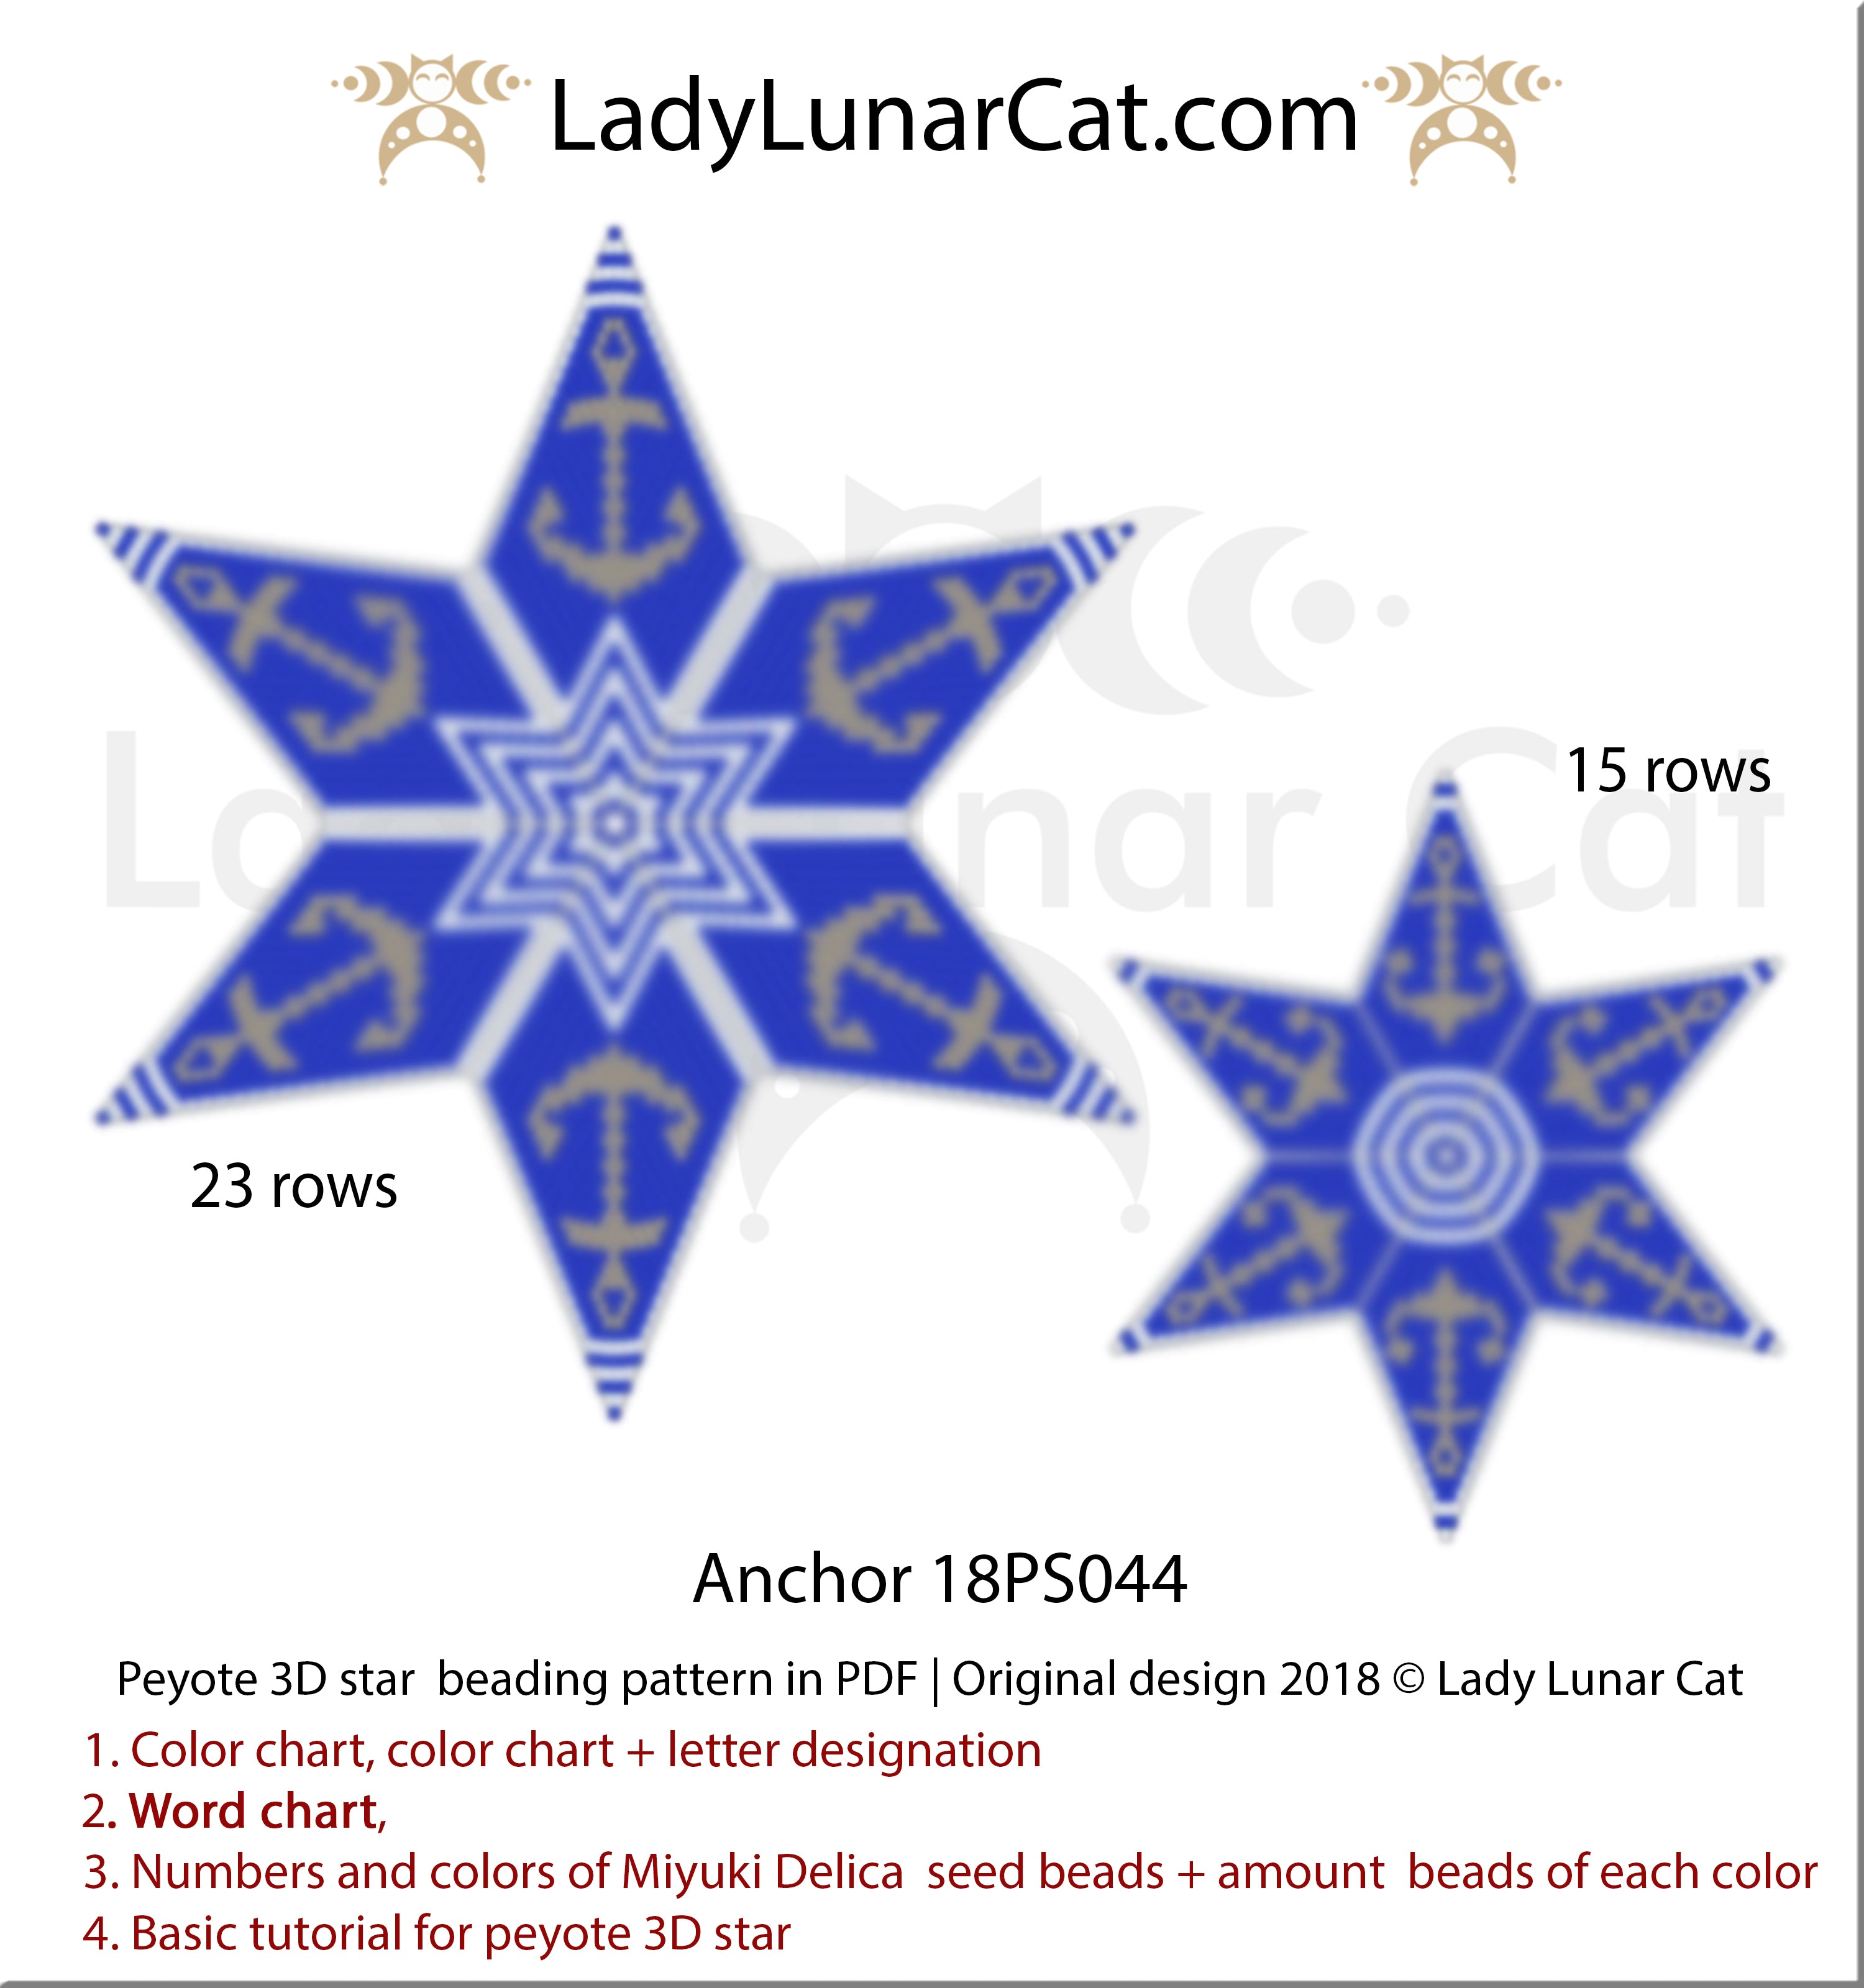 Peyote star pattern Anchor 18PS044 by Lady Lunar Cat